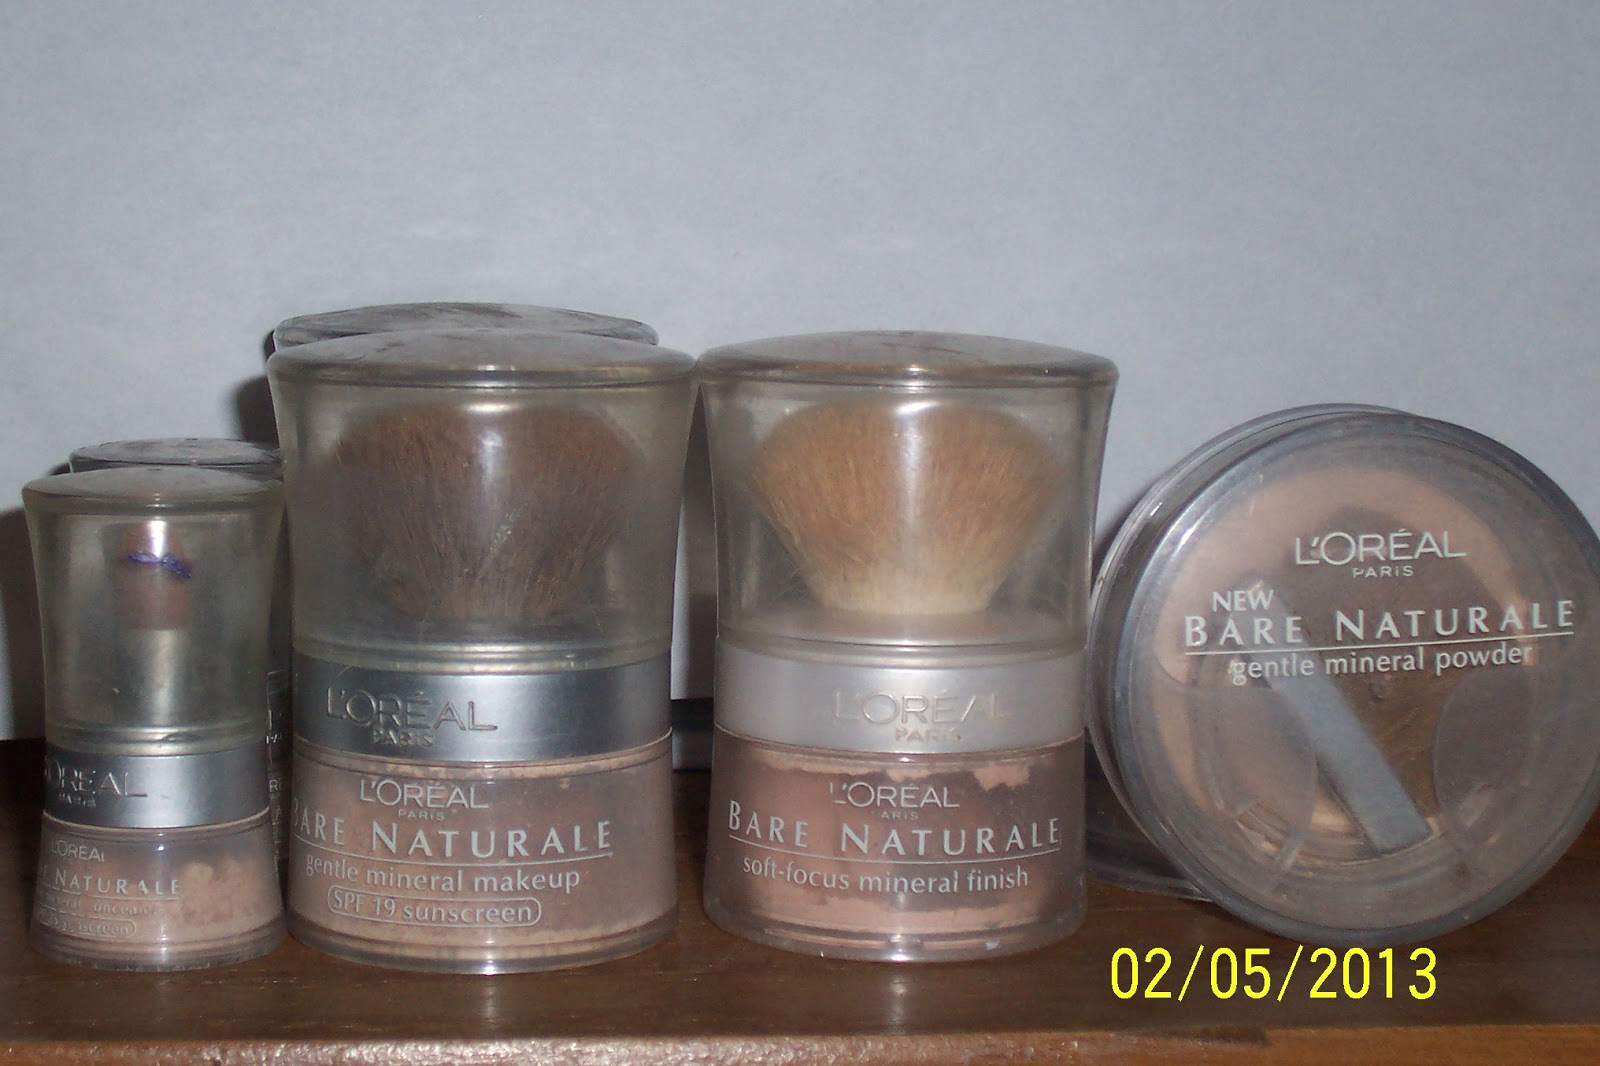 Bare Naturale Gentle Mineral Eye Shadow by L'Oreal #10